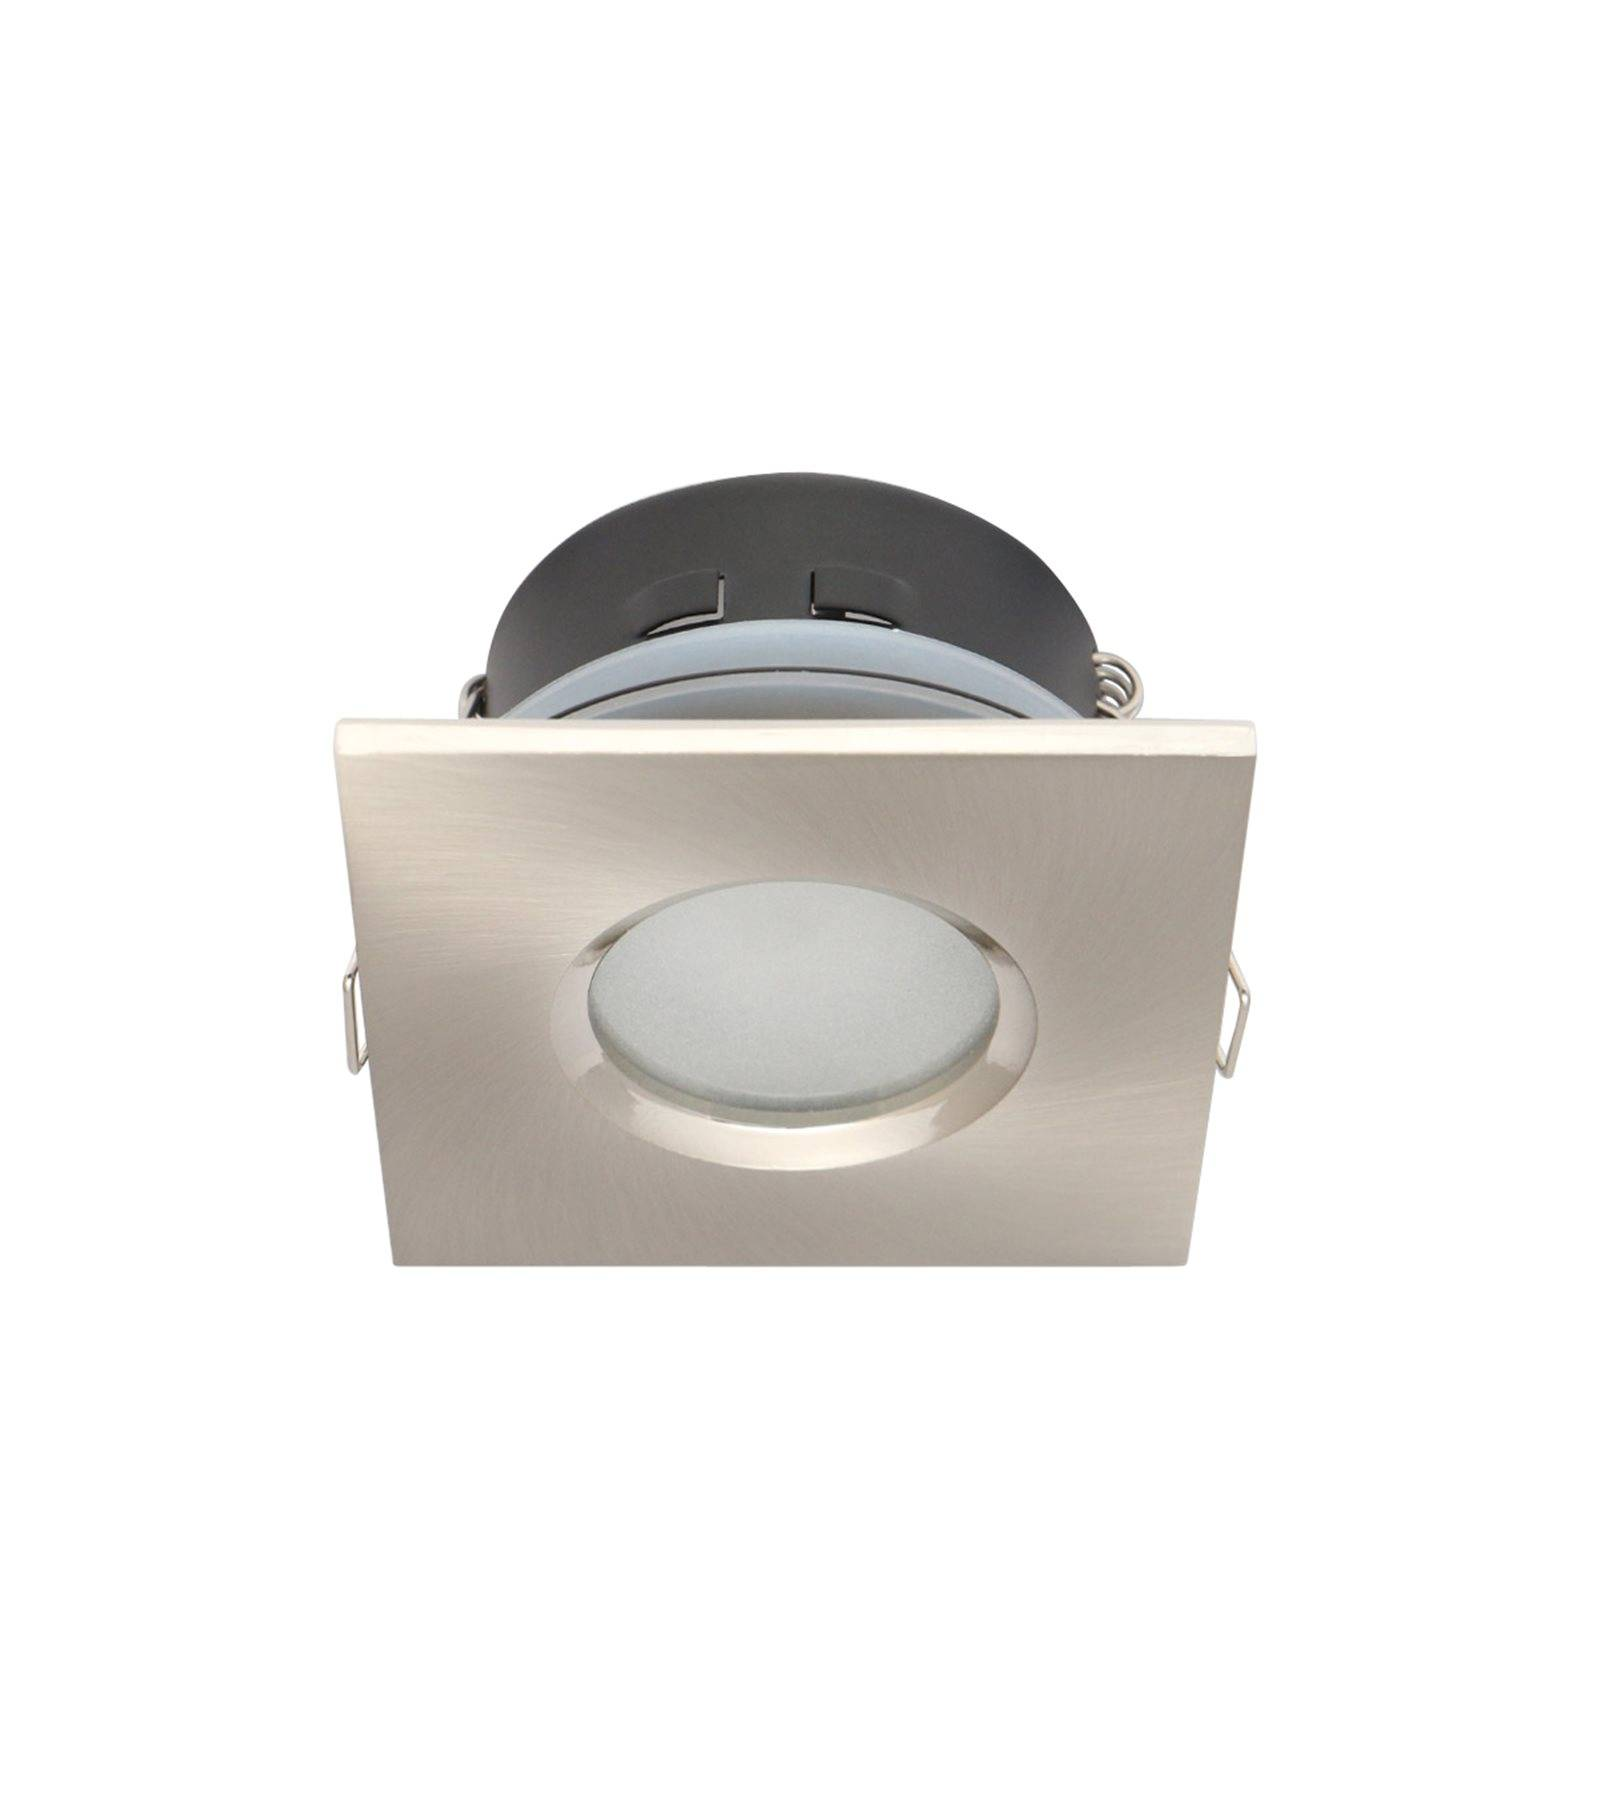 Spot led encastrable salle de bain latest full size of for Spot pour salle de bain etanche